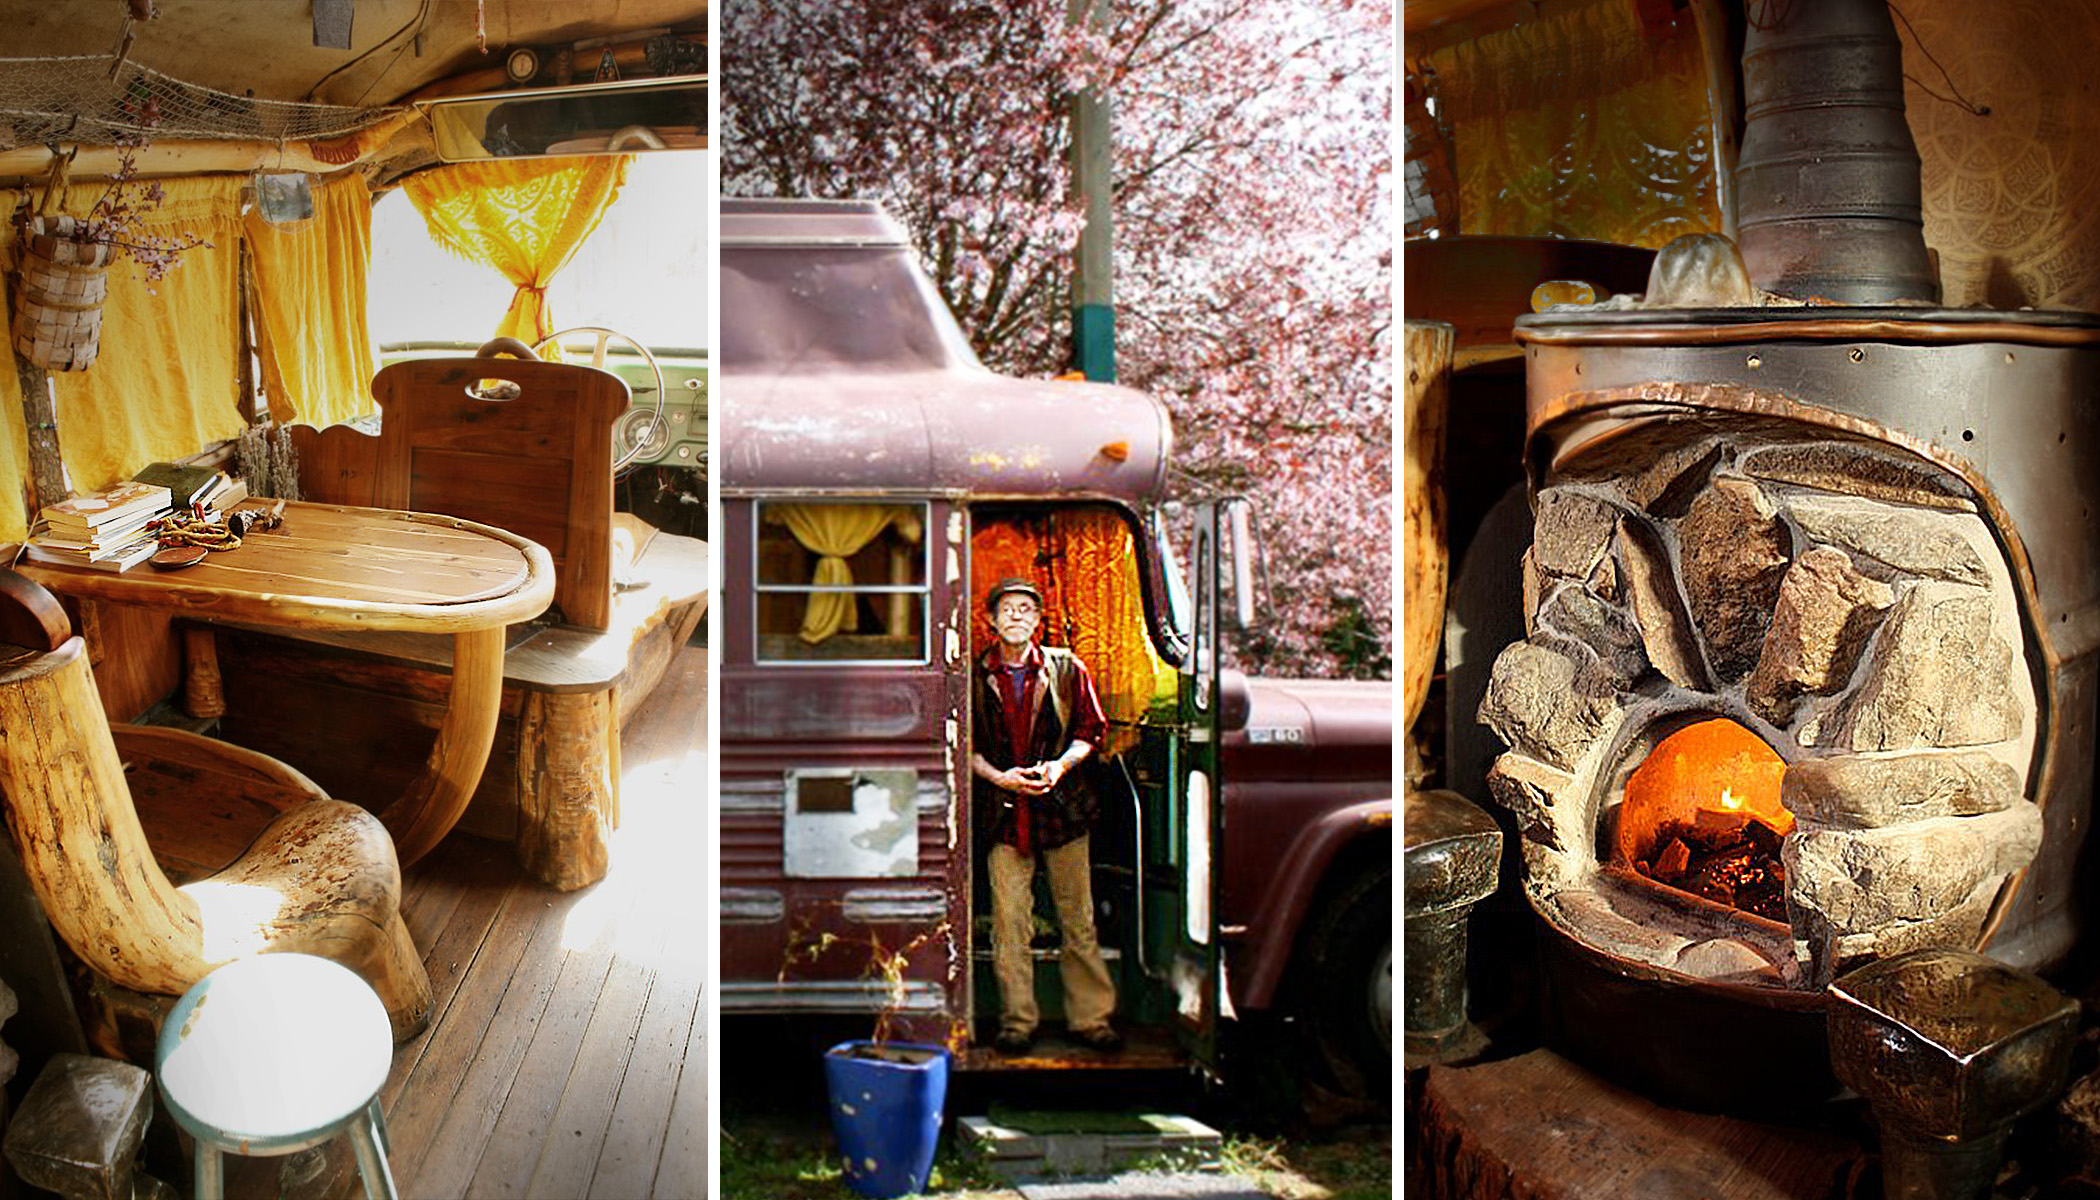 Retired Man Converts Old Beat-Up Bus Into Super-Cozy 'Hobbit Hole' on Wheels